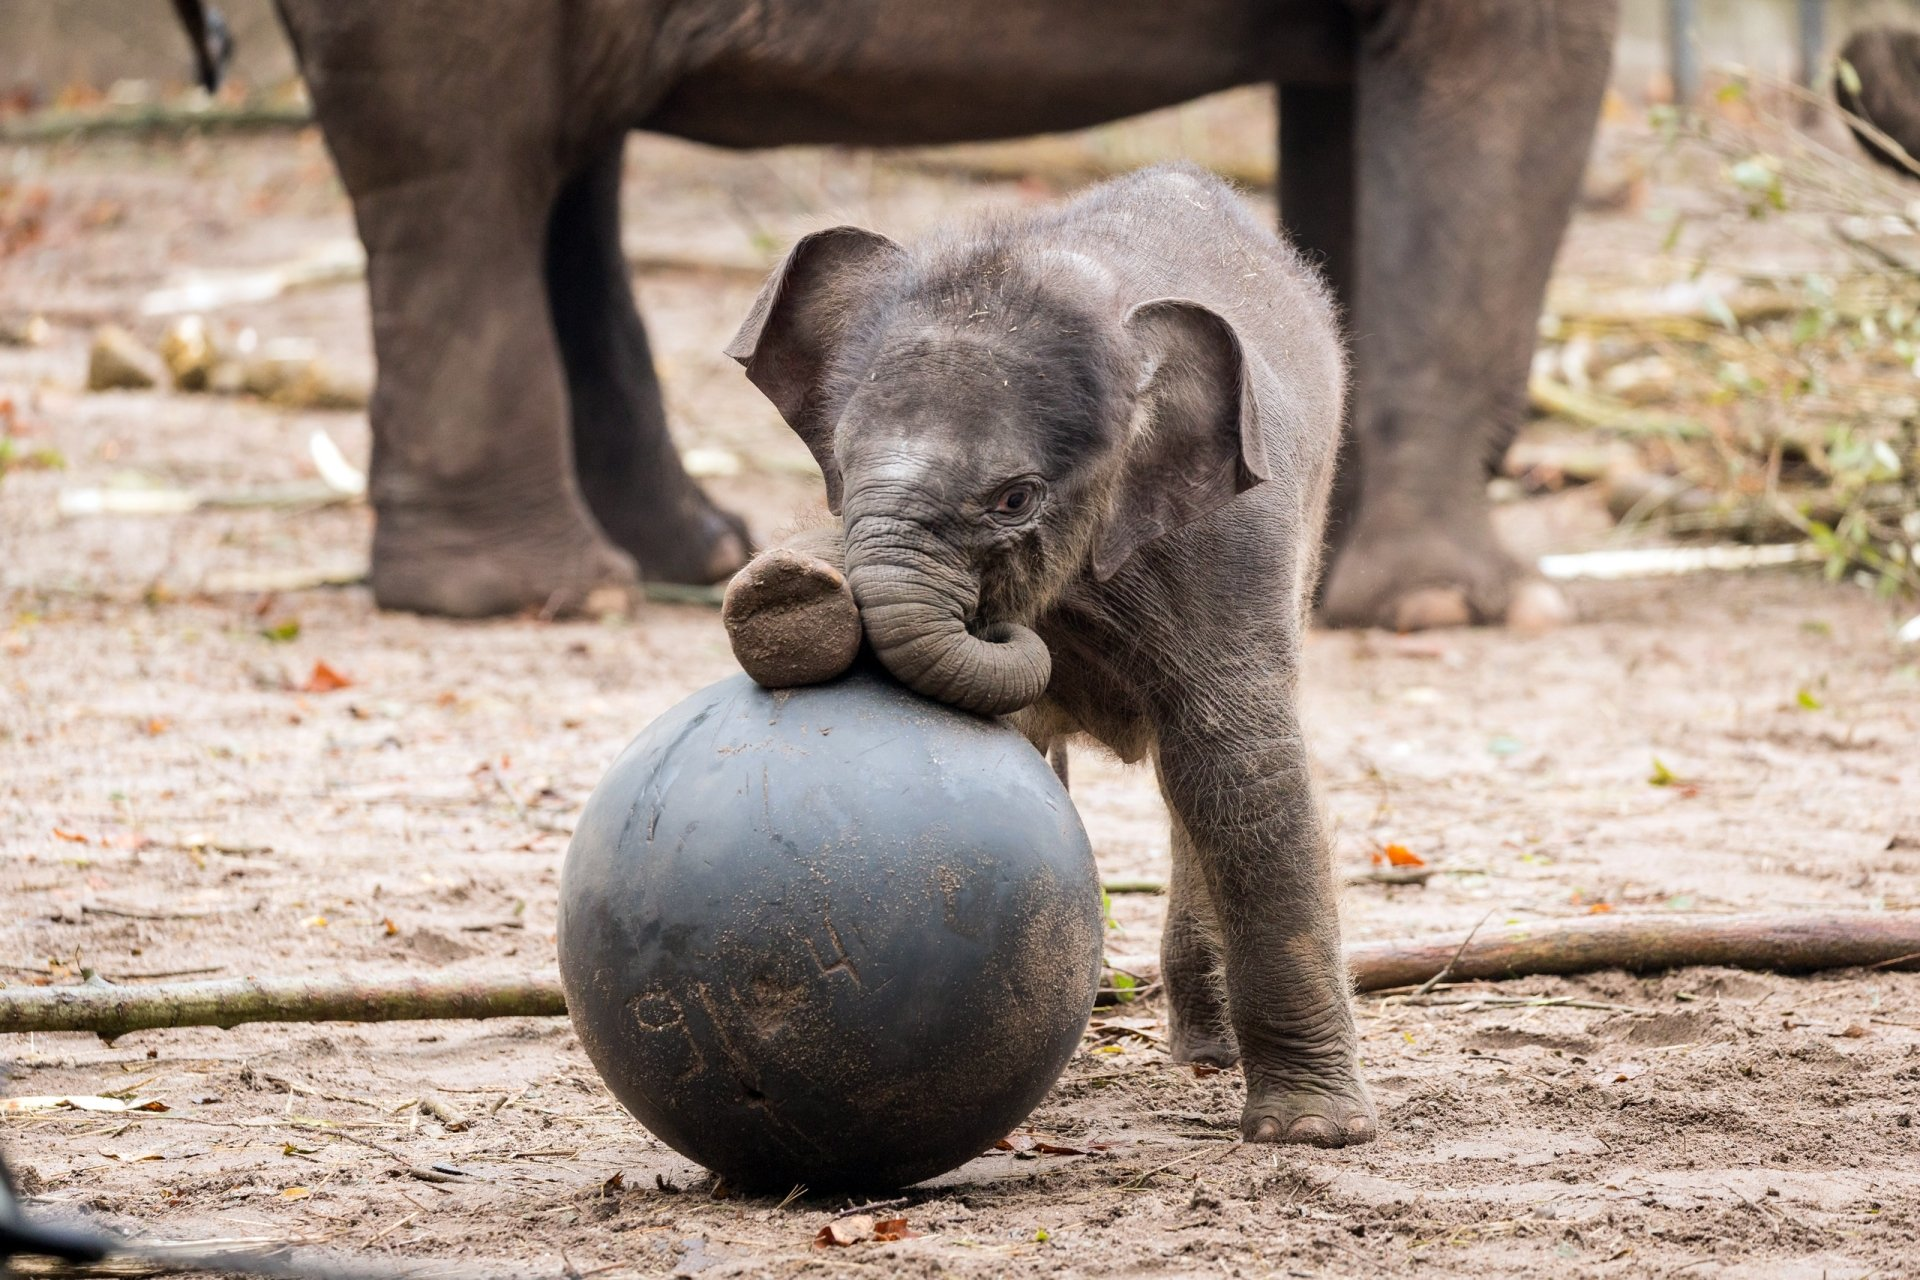 Cute Babies Hd Wallpapers 1366x768 Elefant Hd Wallpaper Hintergrund 2560x1707 Id 766866